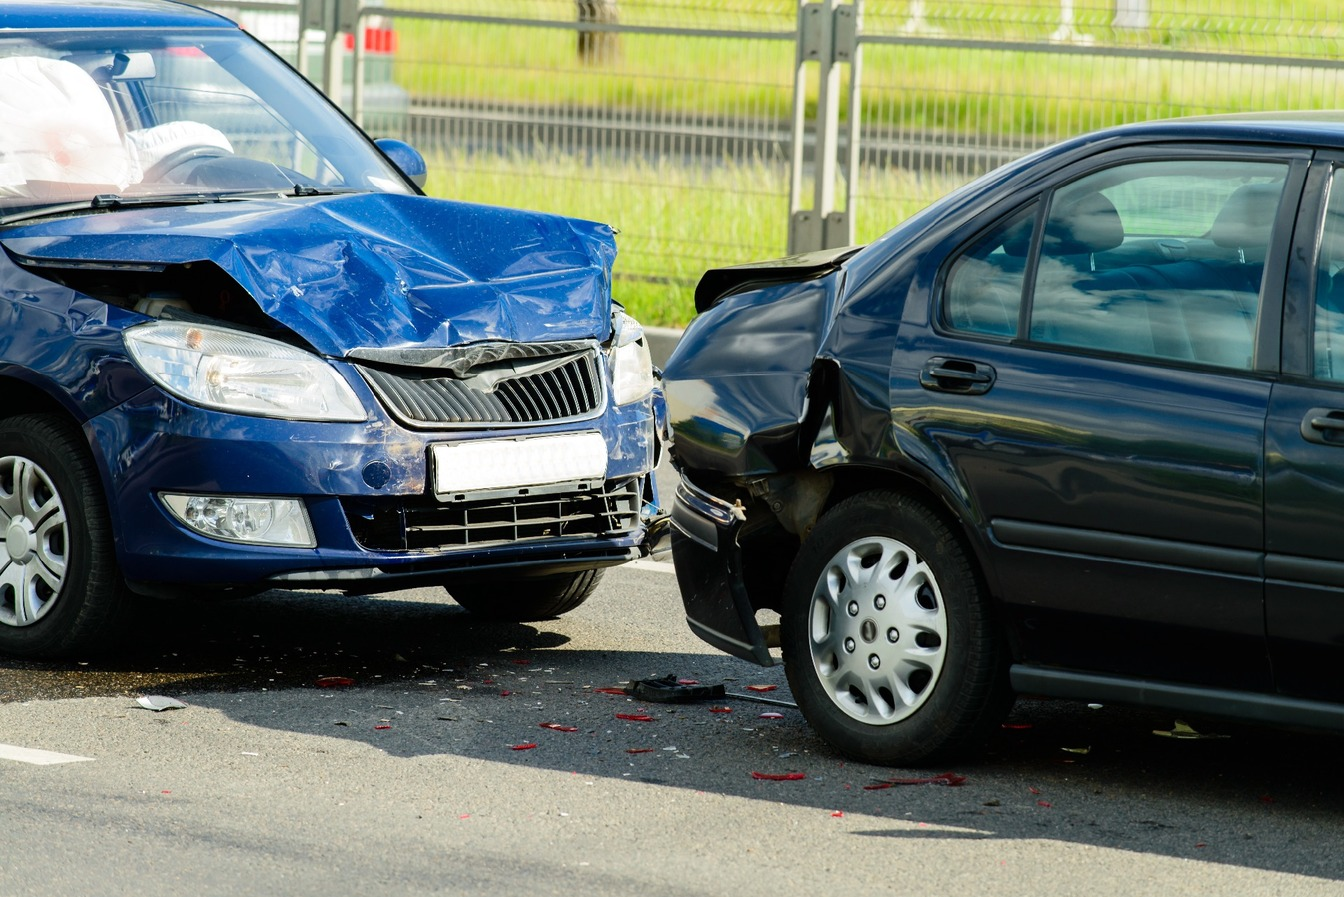 A blue car with a smashed bonnet, rear-ending a black car.